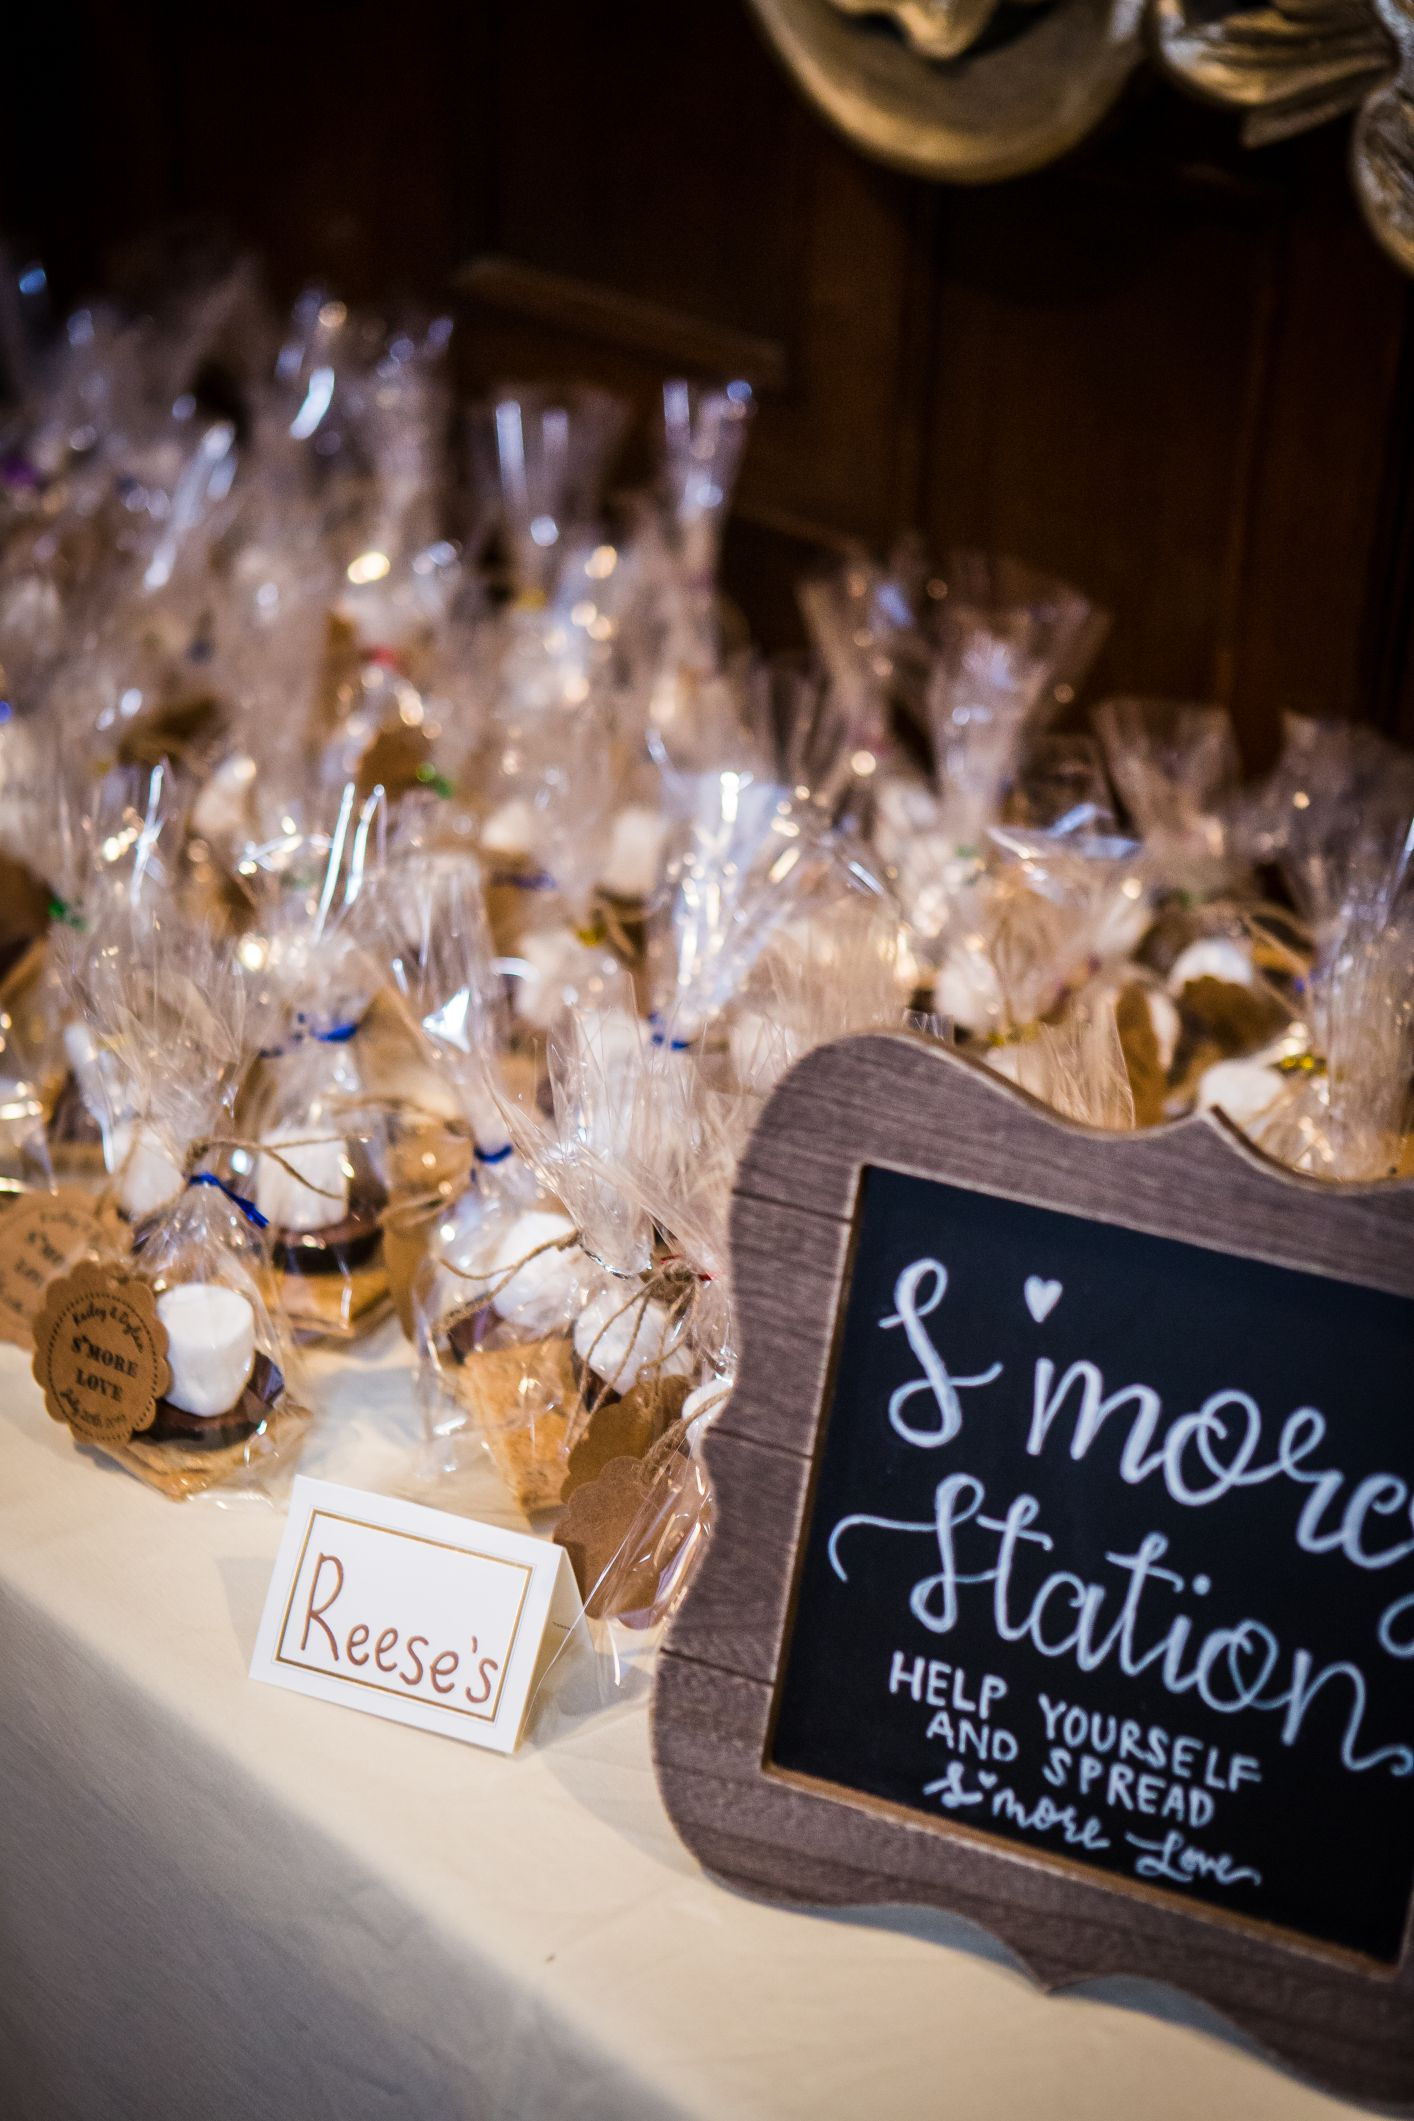 s'mores station at wedding reception